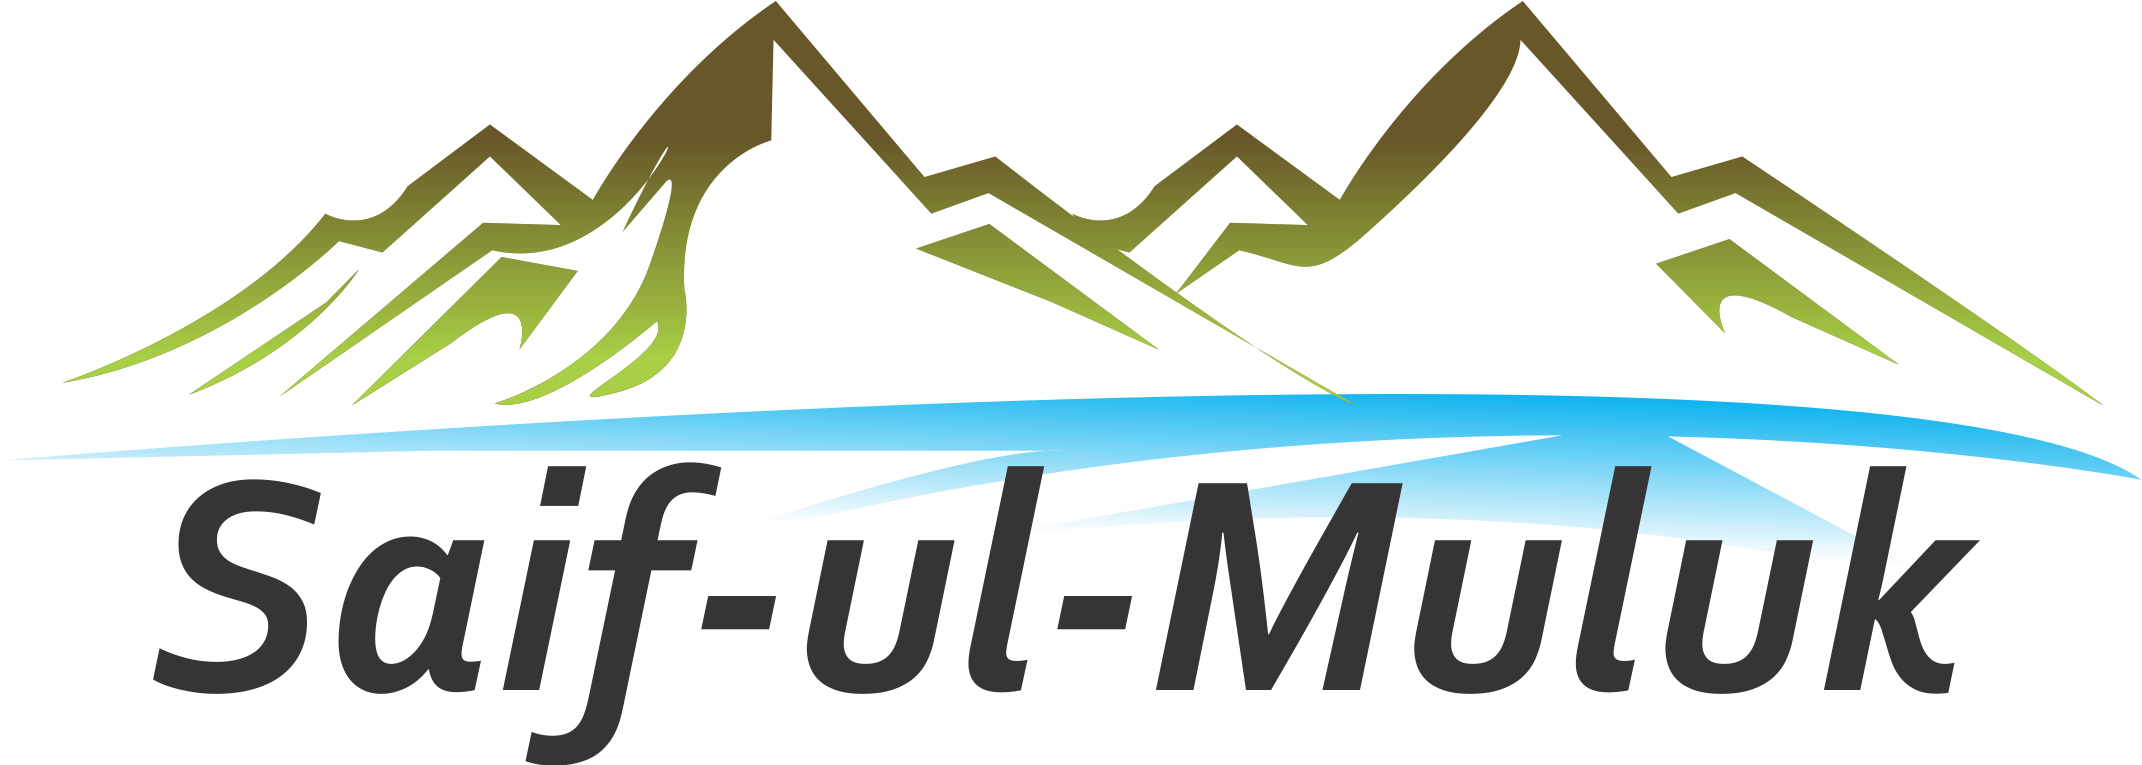 SaifulMuluk Tour and Travel Company | Saif-Ul-Muluk | Page with left sidebar - SaifulMuluk Tour and Travel Company | Saif-Ul-Muluk